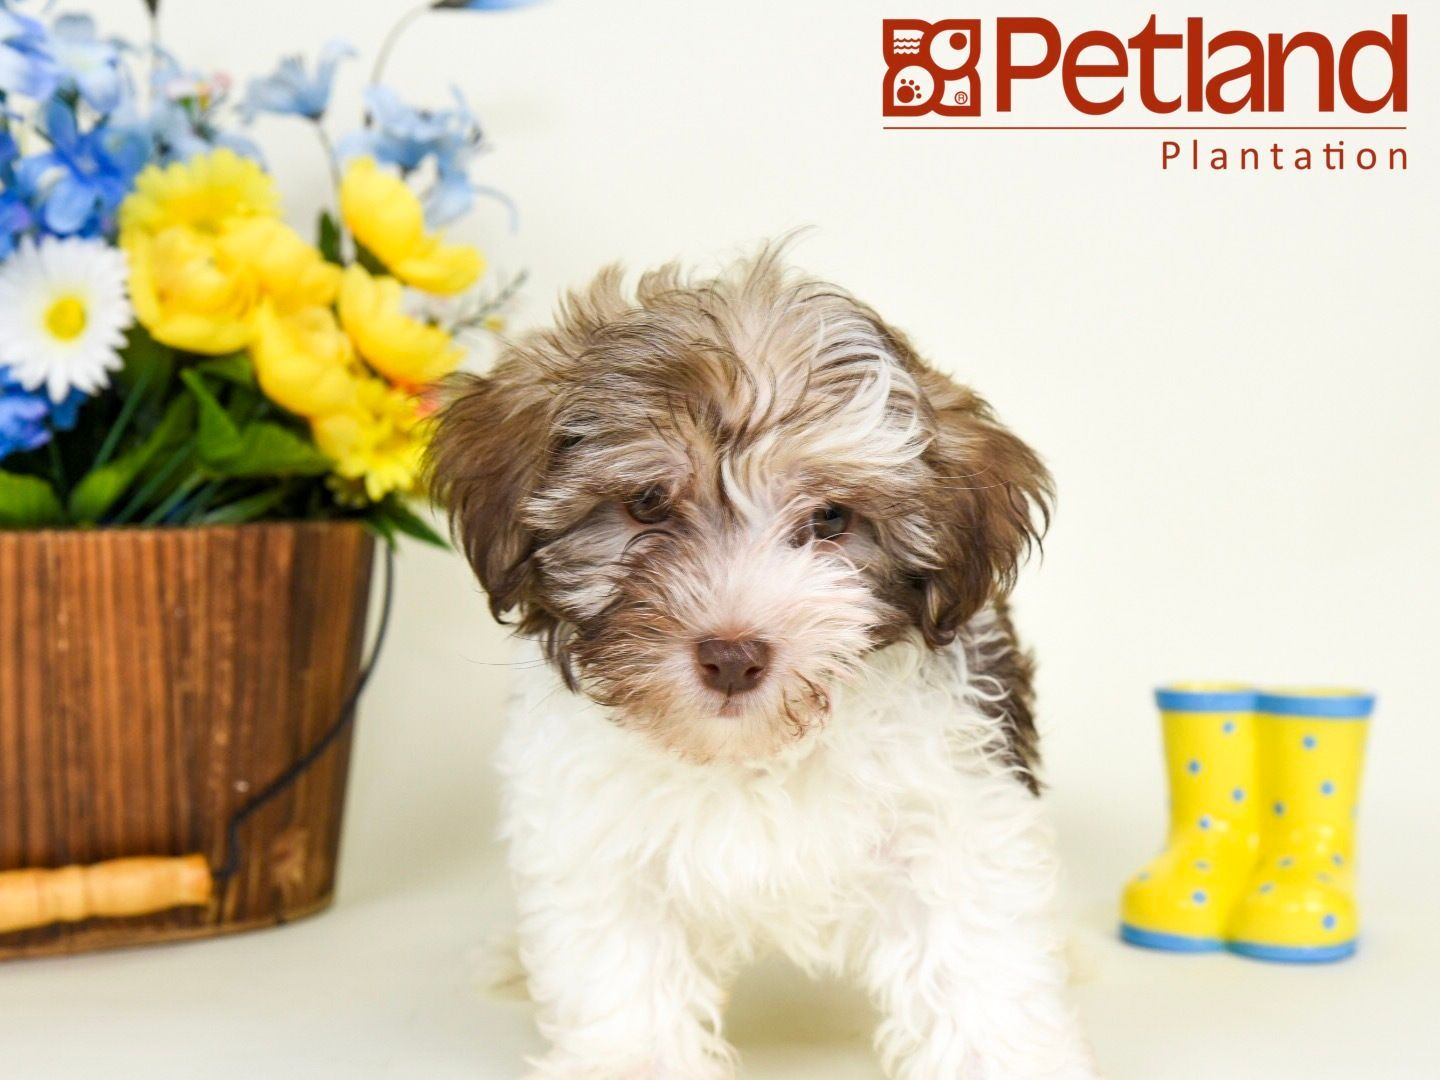 Petland Florida has Havanese puppies for sale! Interested